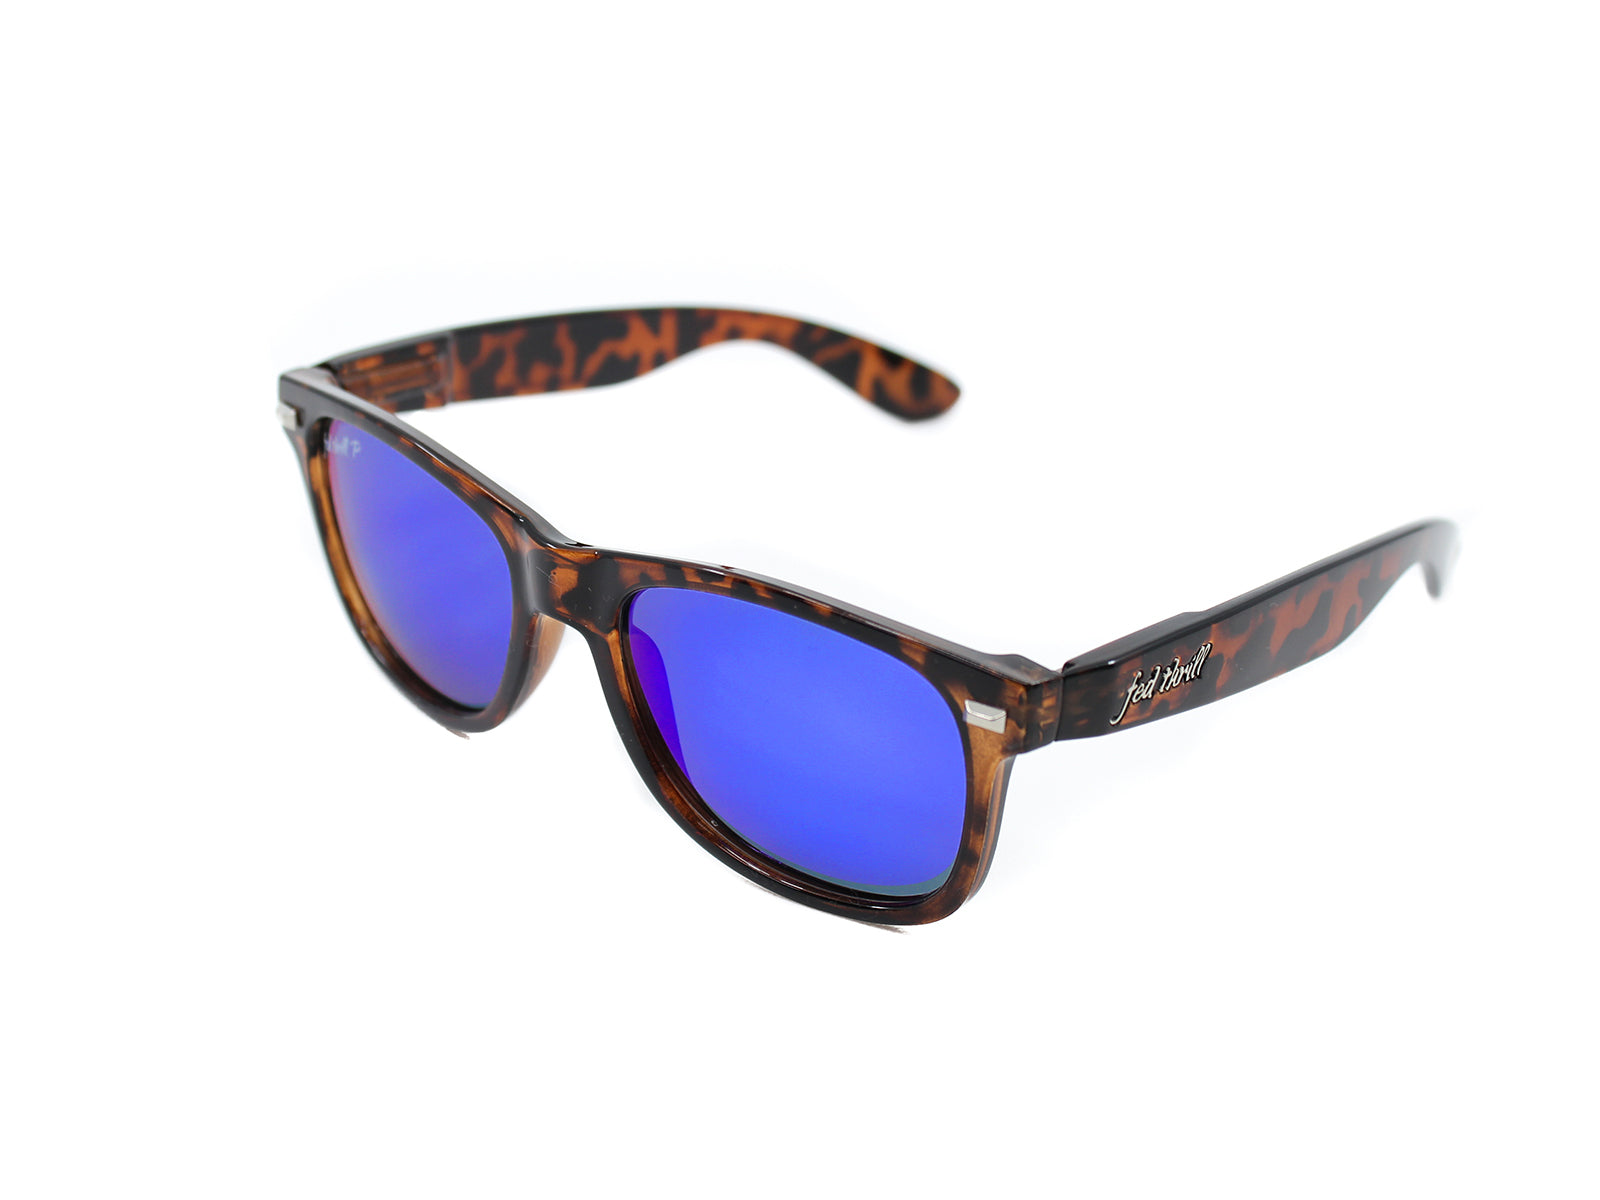 Fultons - Beachfronts: Glossy Tortoise / Mirrored Blue Polarized